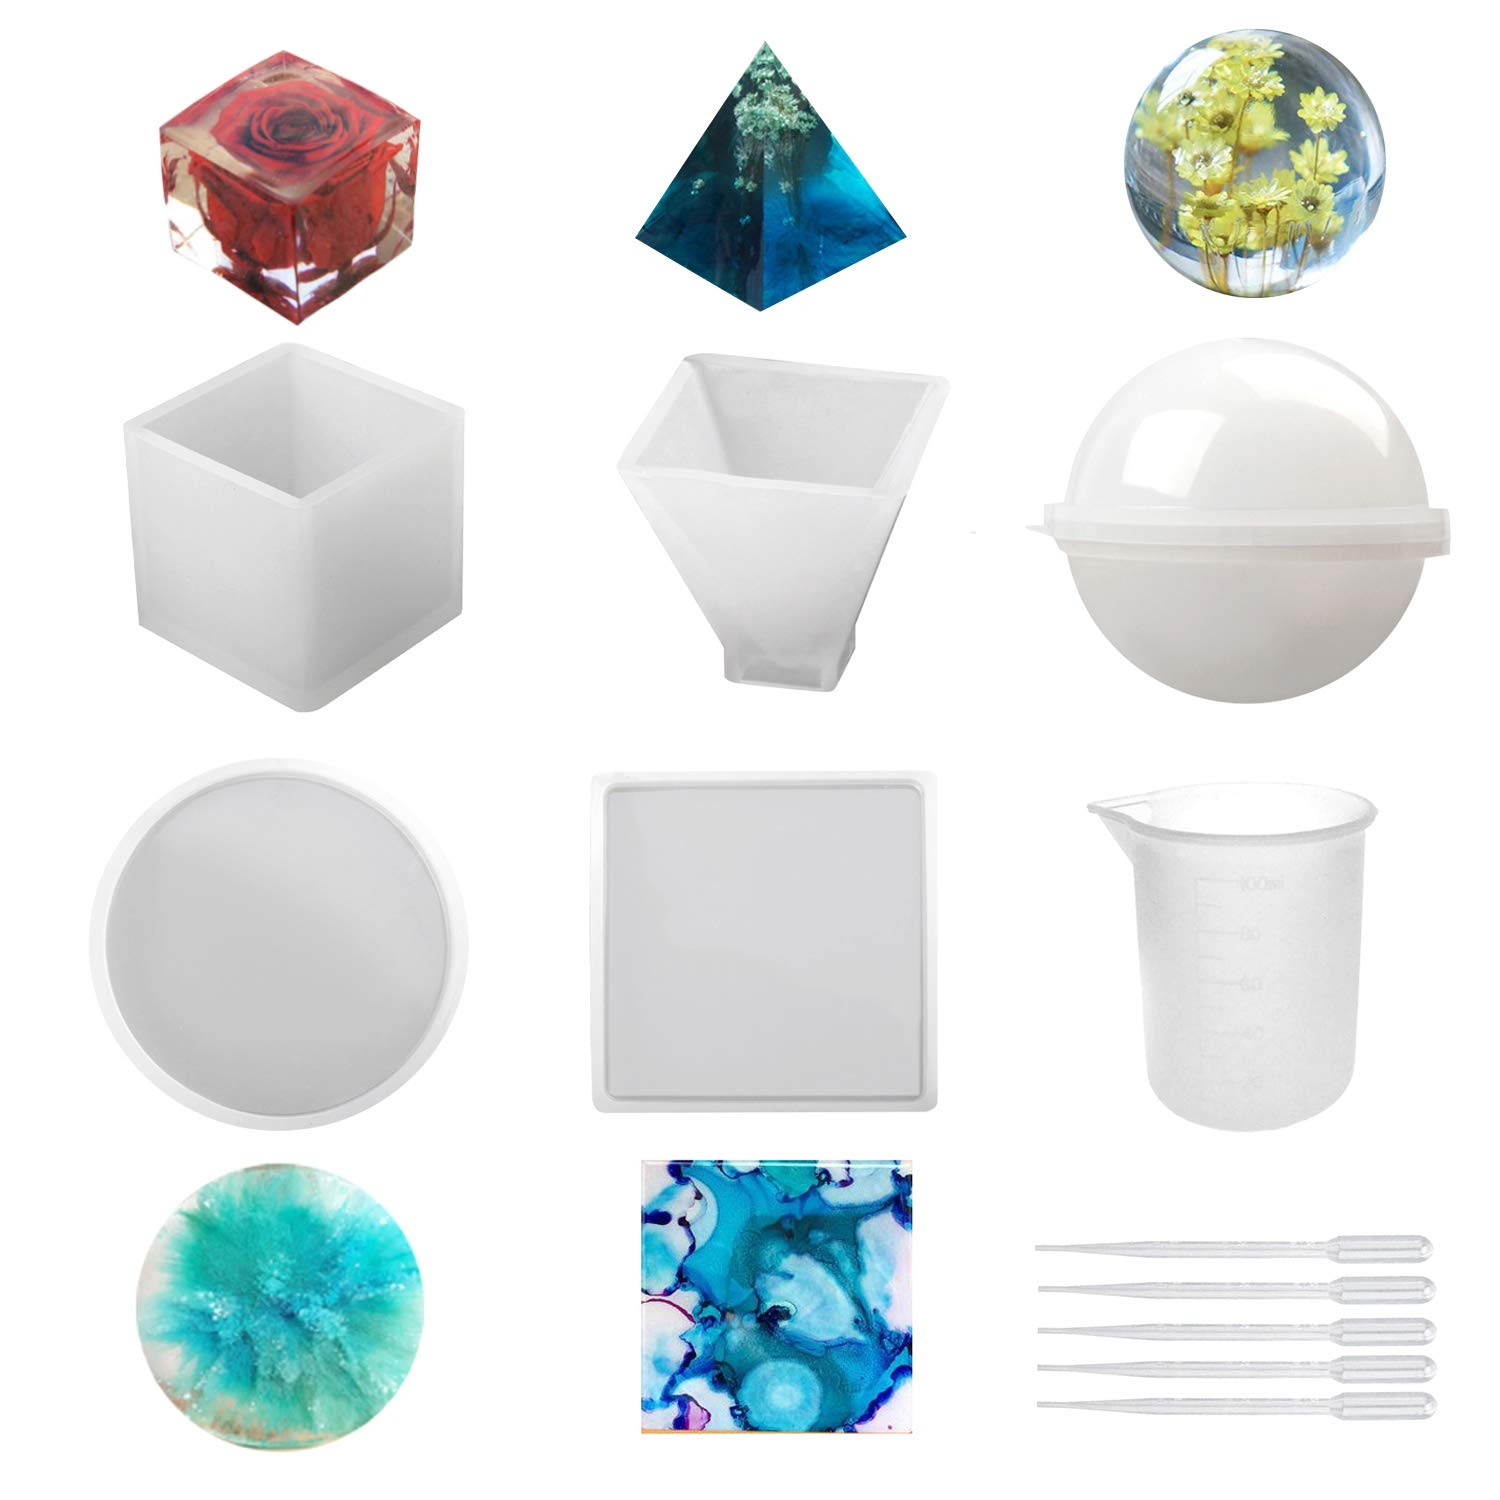 Cube Square Silicone Resin Molds 5Pcs Resin Casting Molds Including Sphere Soap Pyramid Candle Wax Bowl Mat etc Round with 1 Measuring Cup /& 5 Plastic Transfer Pipettes for Resin Epoxy